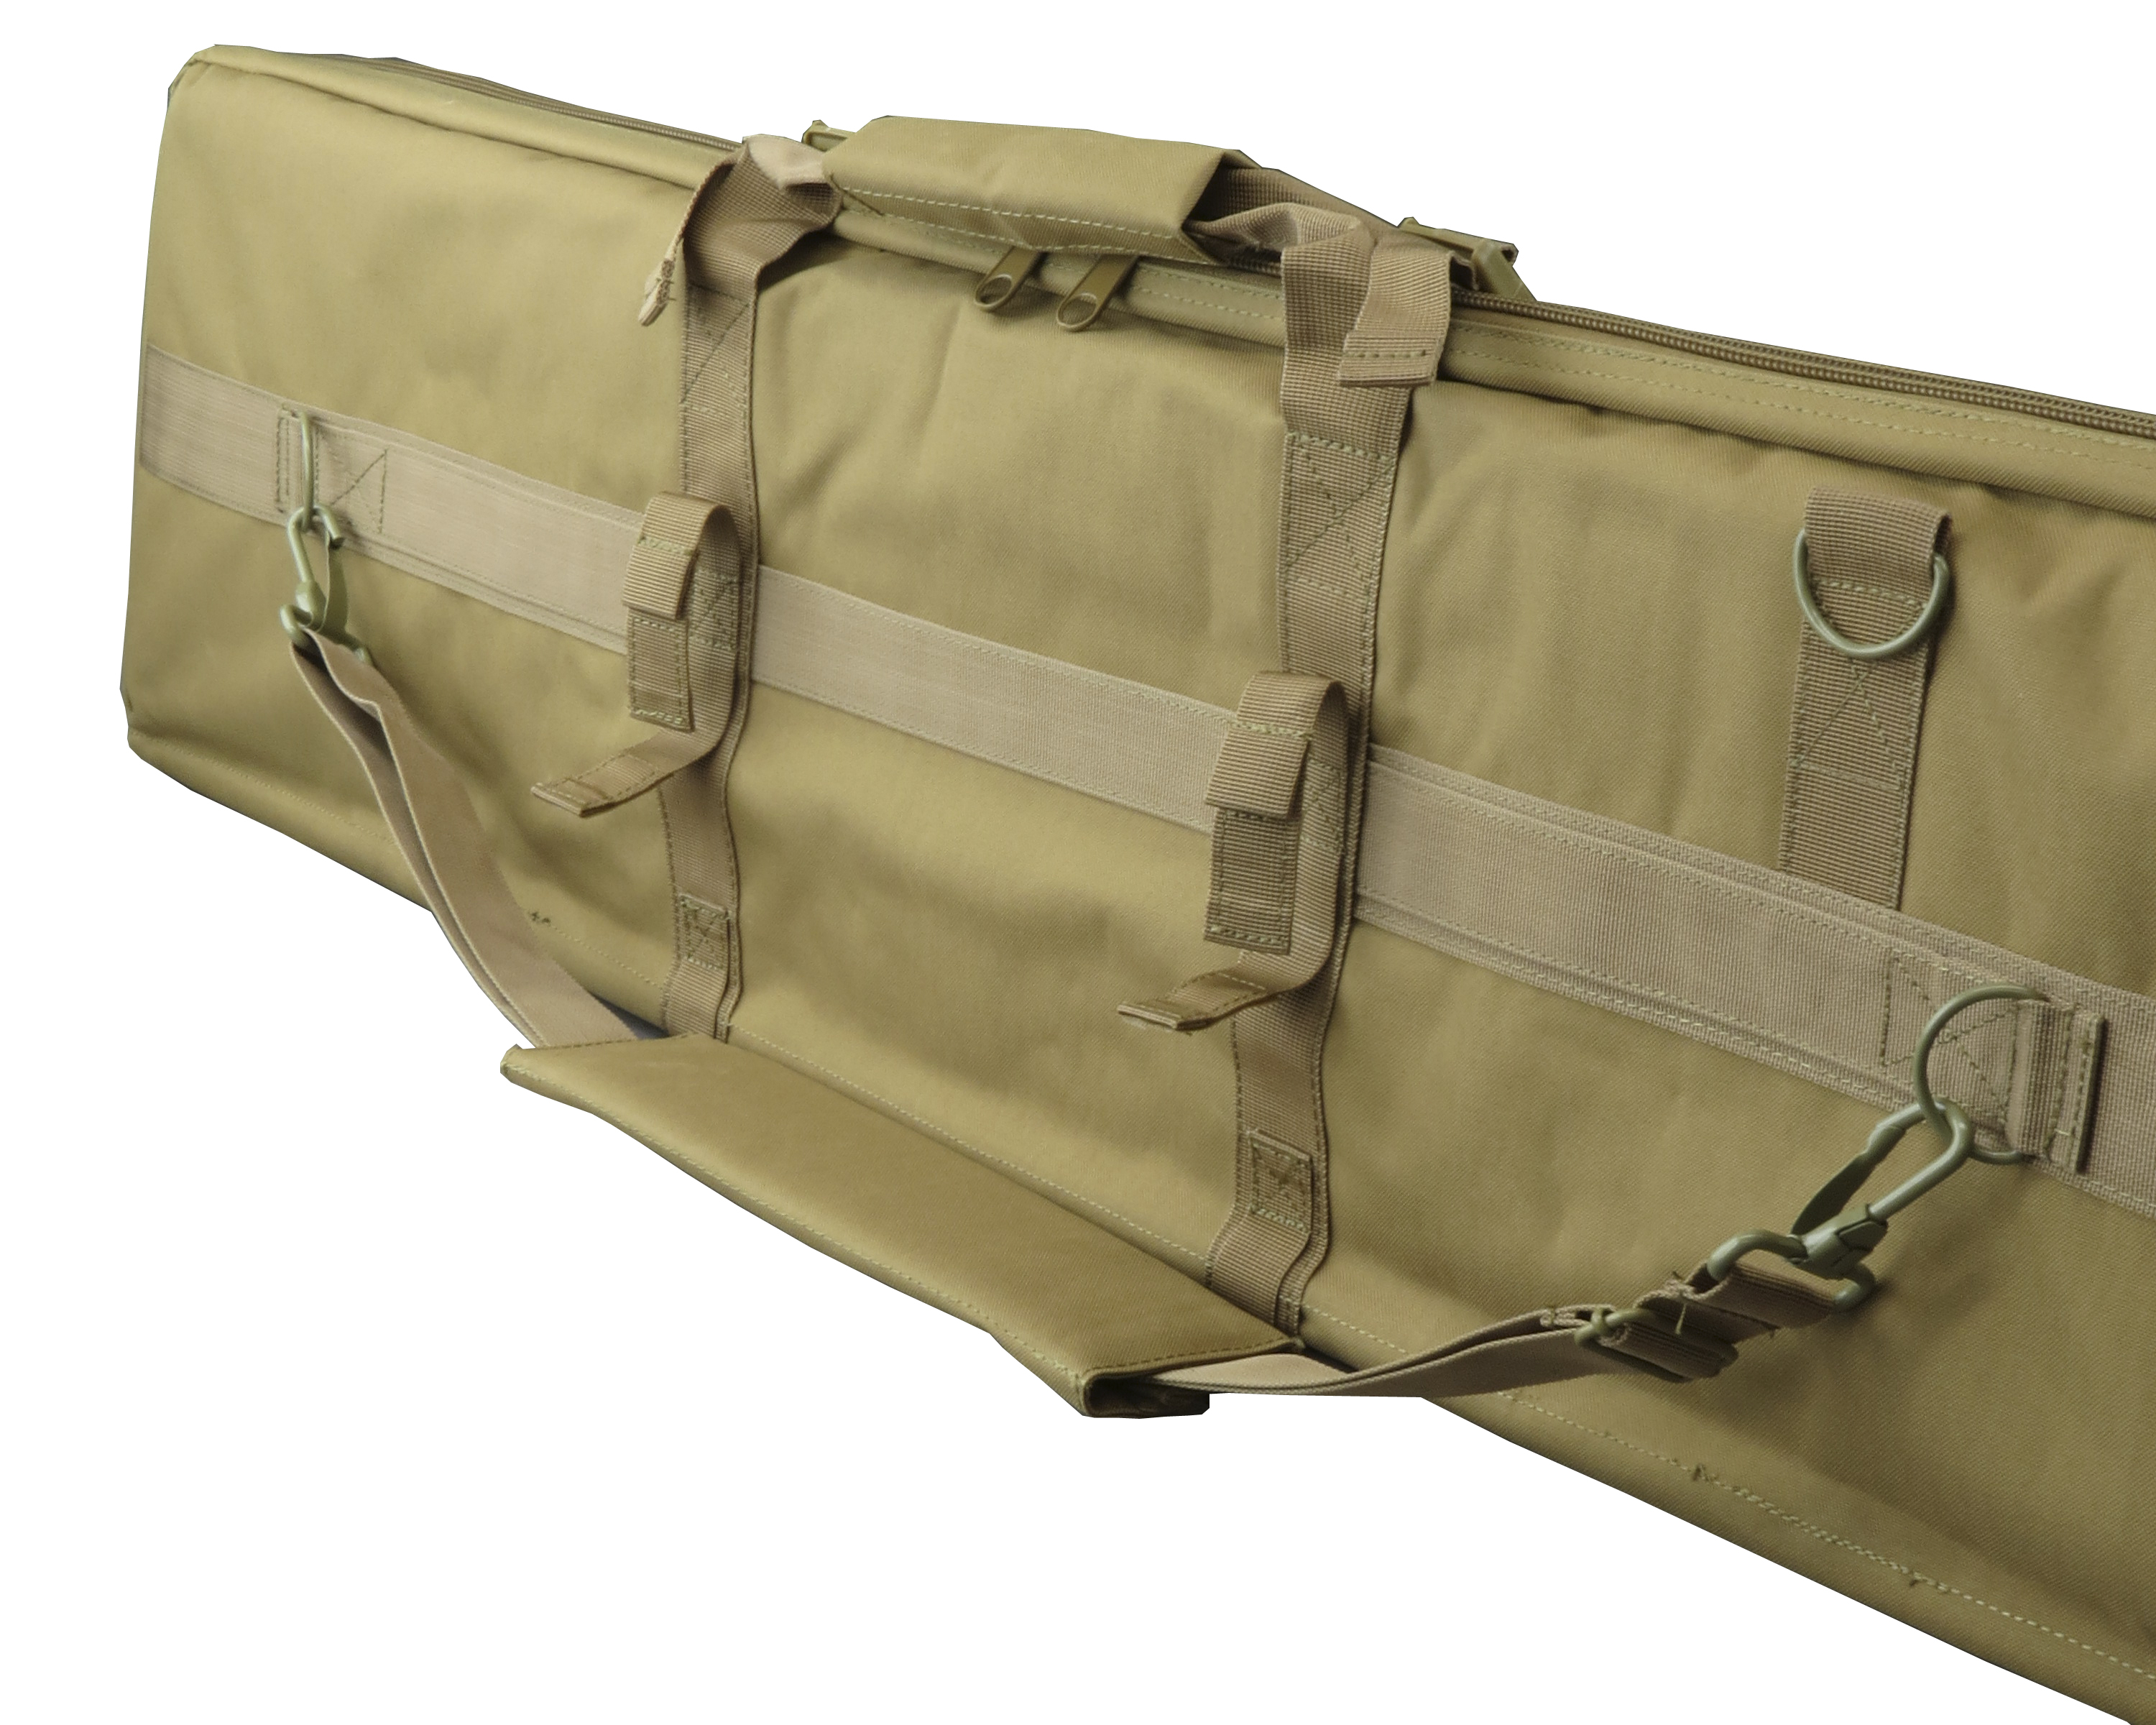 condor_42_single_rifle_case_view_8.jpg